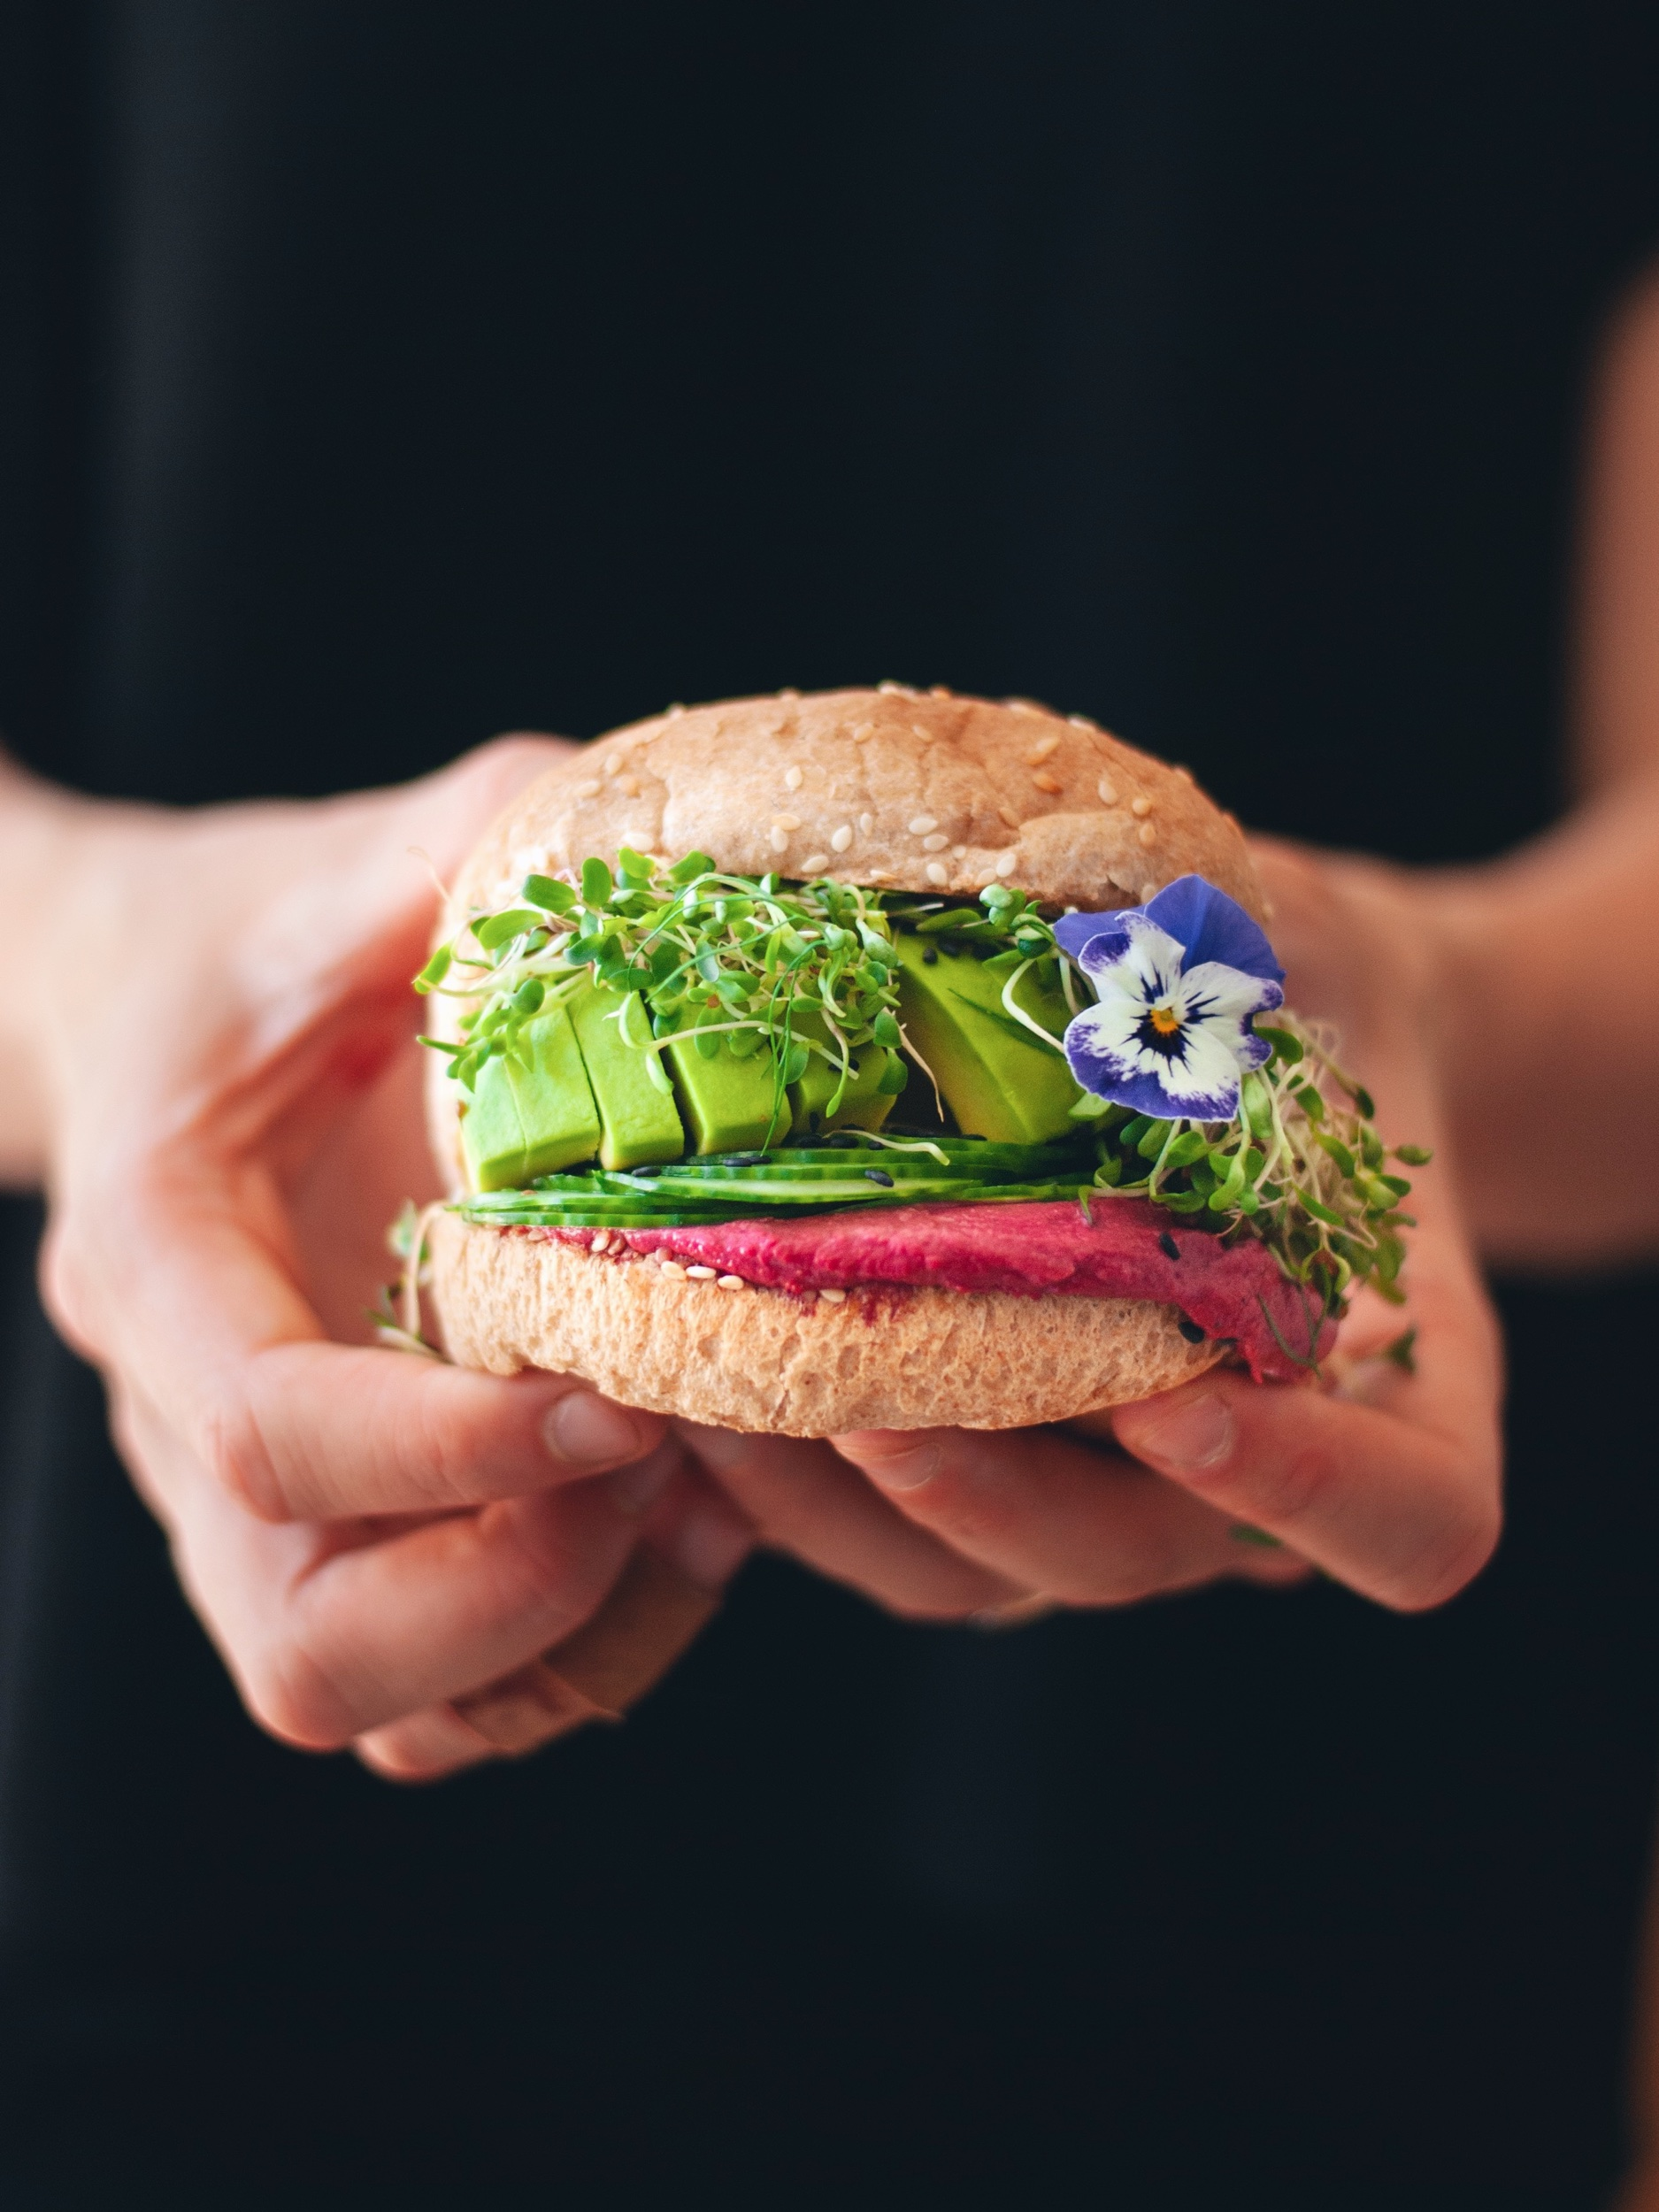 Summer Sandwich with Beet Hummus, Avocado, and Sprouts {Vegan, Gluten Free} - Who said summer is only for burgers?! These summery sandwiches make burger buns shine! - #glutenfree #vegan #vegetarian #dairyfree #summereats #sandwich #glutenfree